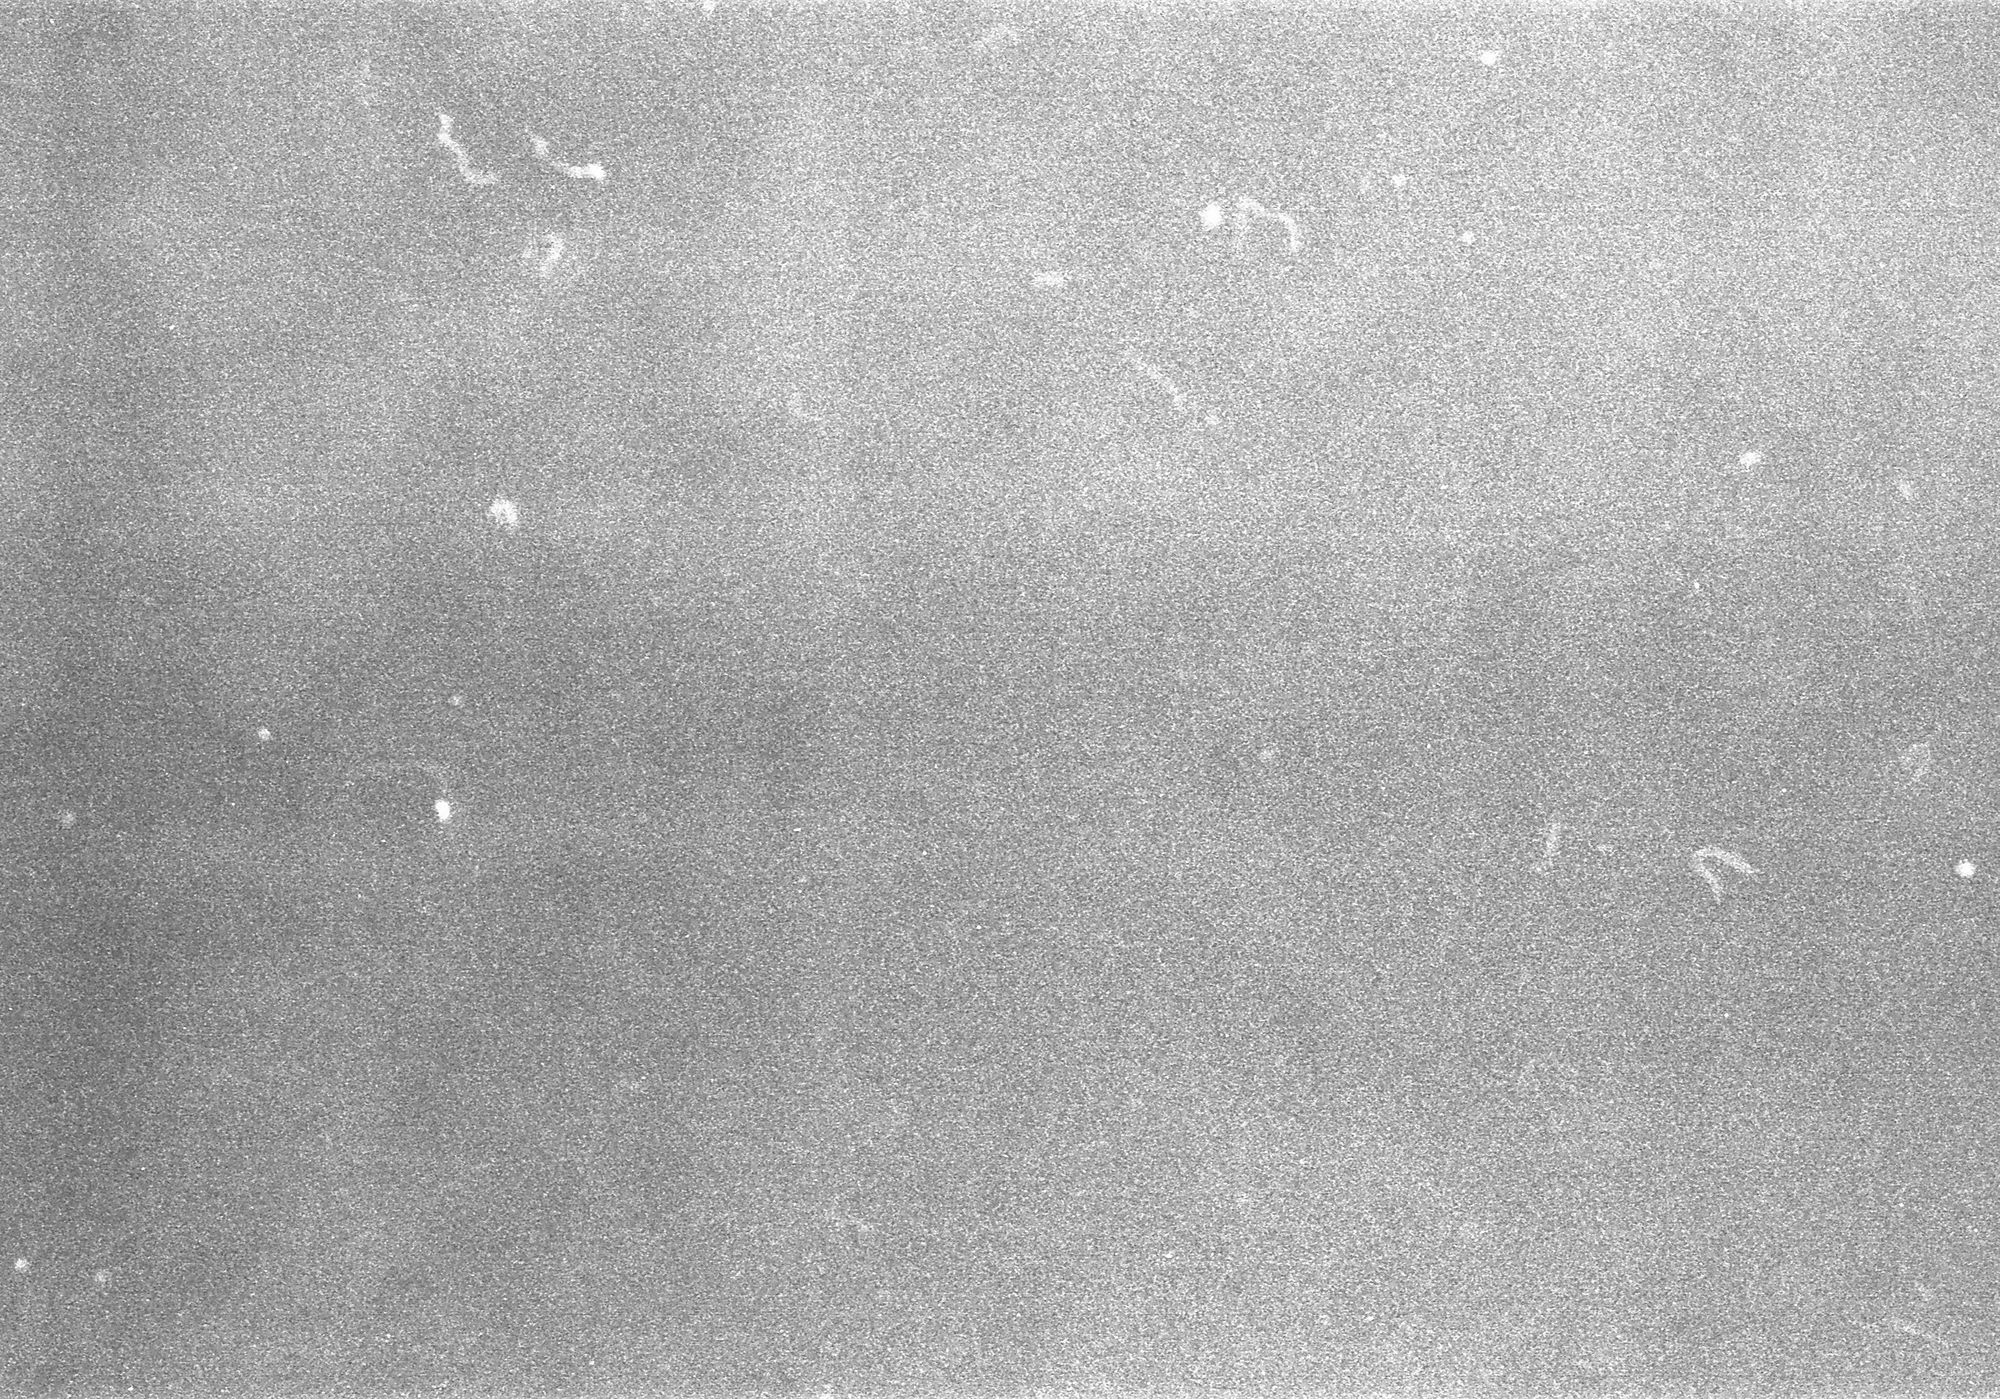 Example of noise on an image from an old fashioned film frame.